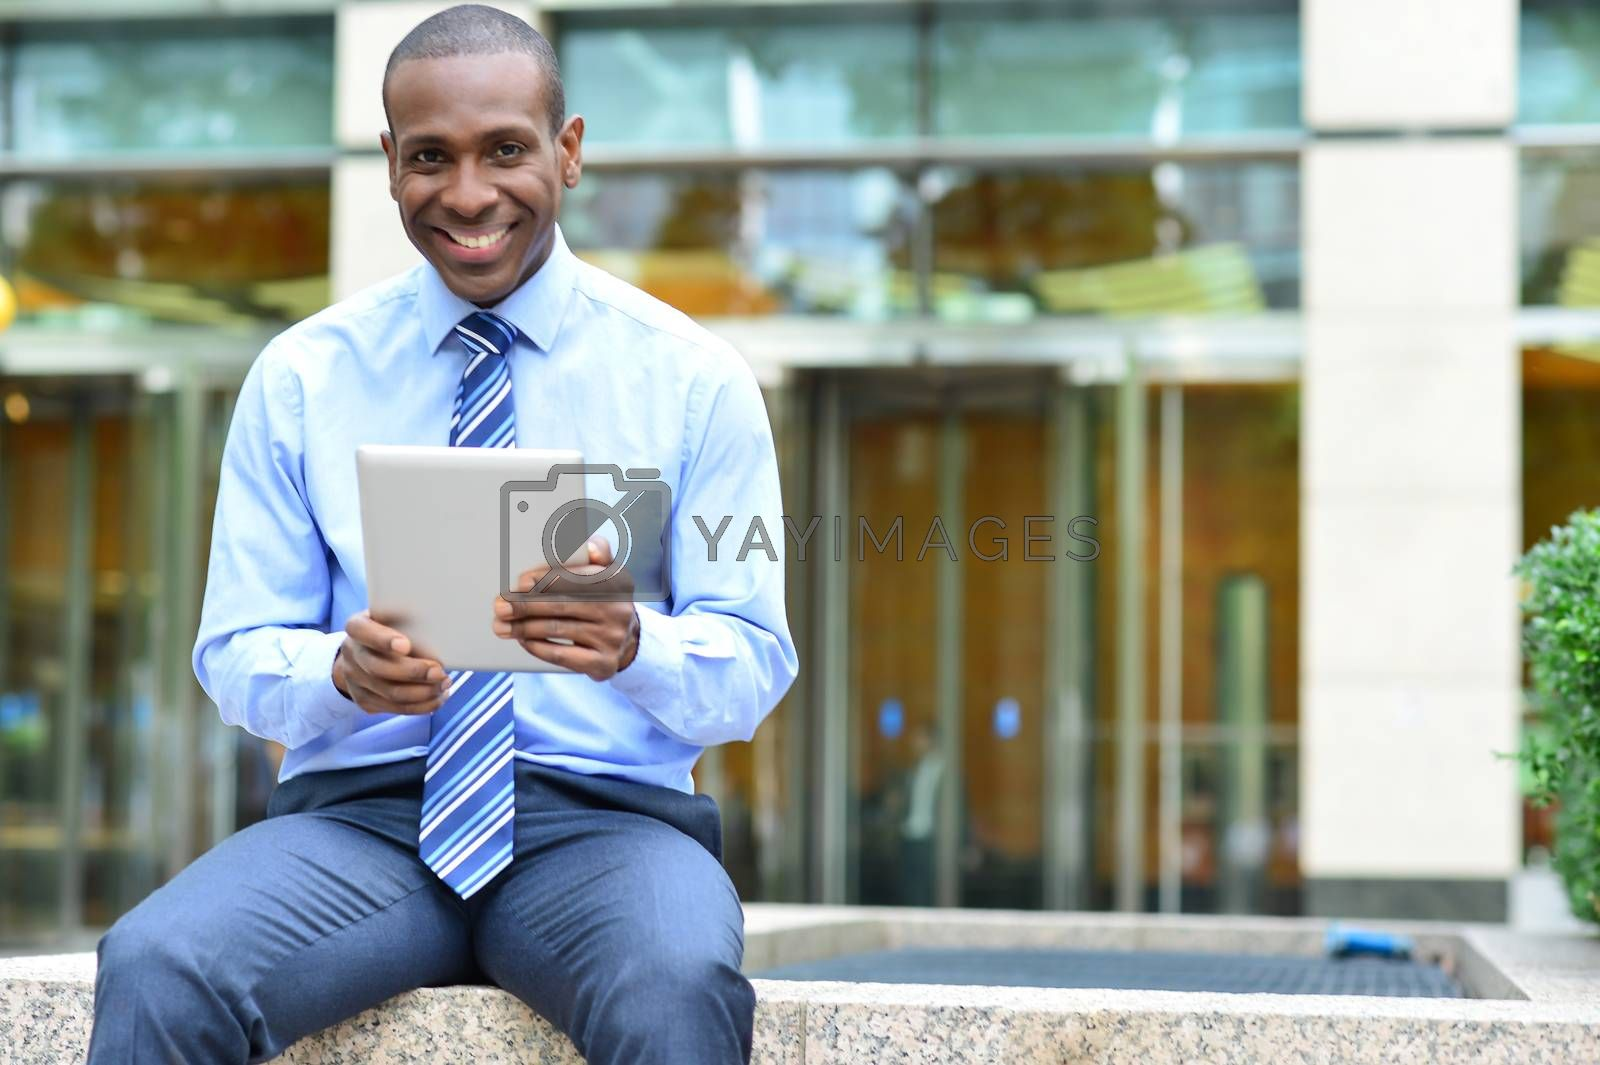 Corporate male siting outdoors with his new tablet pc